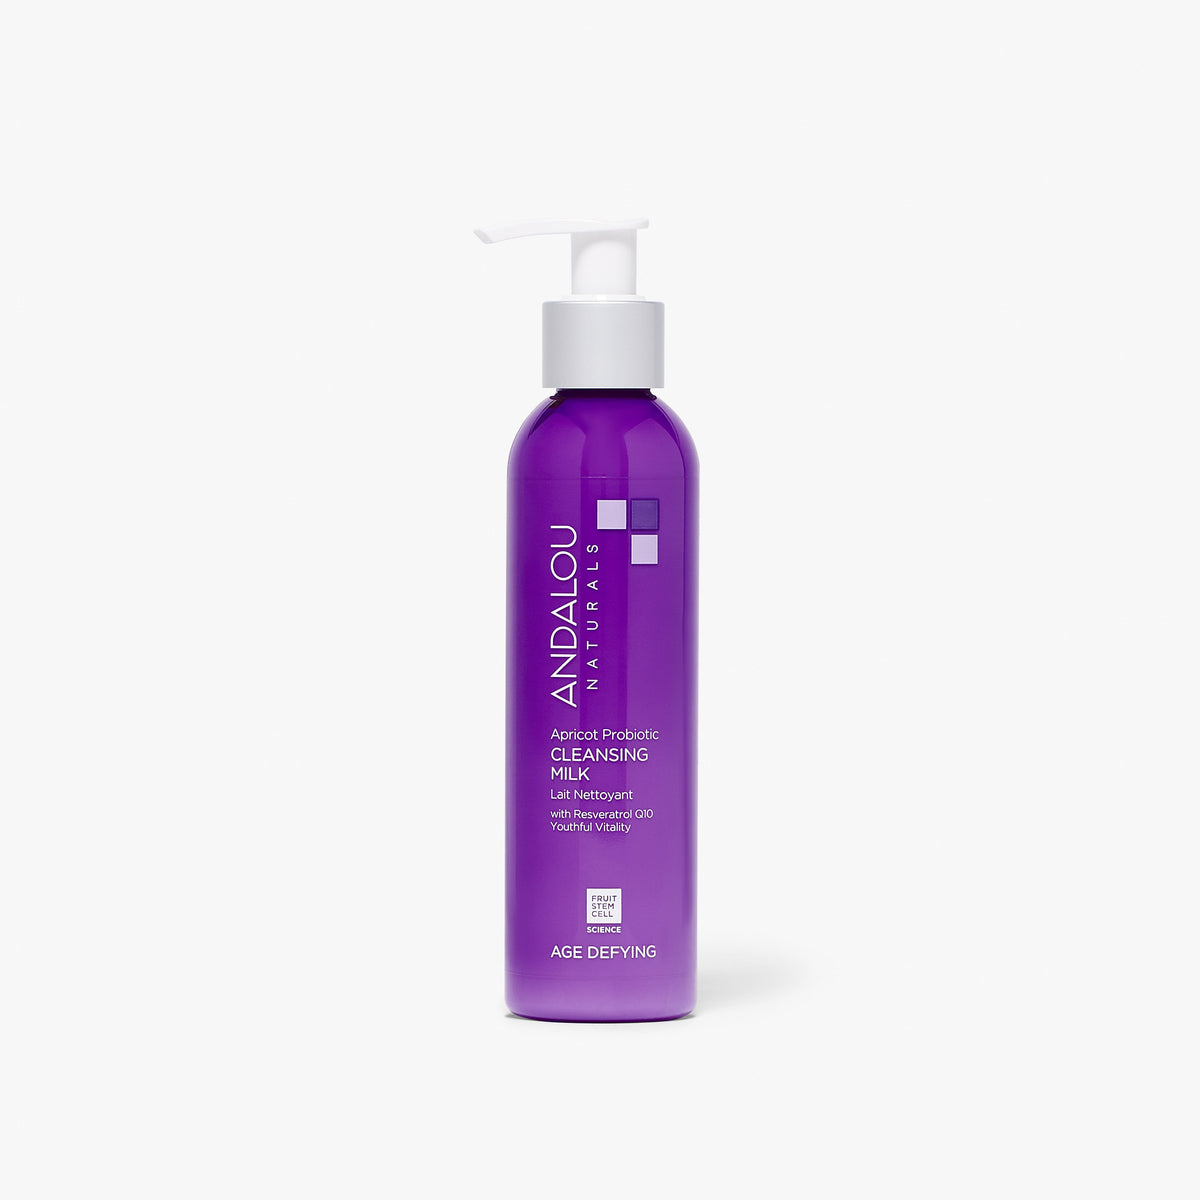 Andalou Naturals Age Defying Apricot Probiotic Cleansing Milk bottle